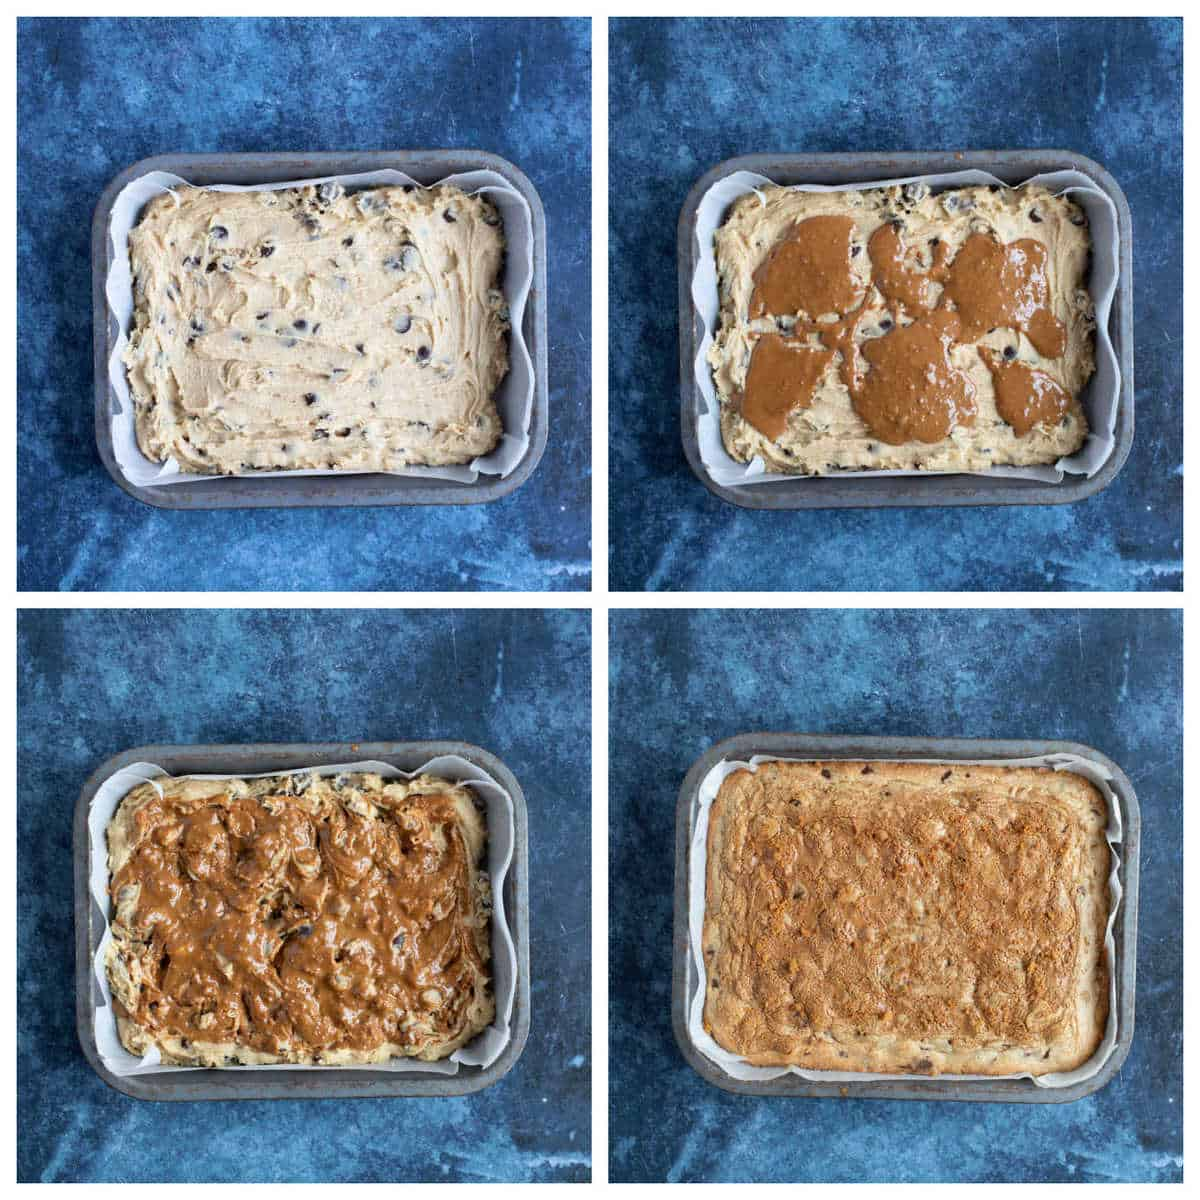 Step by step photo instructions for making Biscoff blondies part 2.